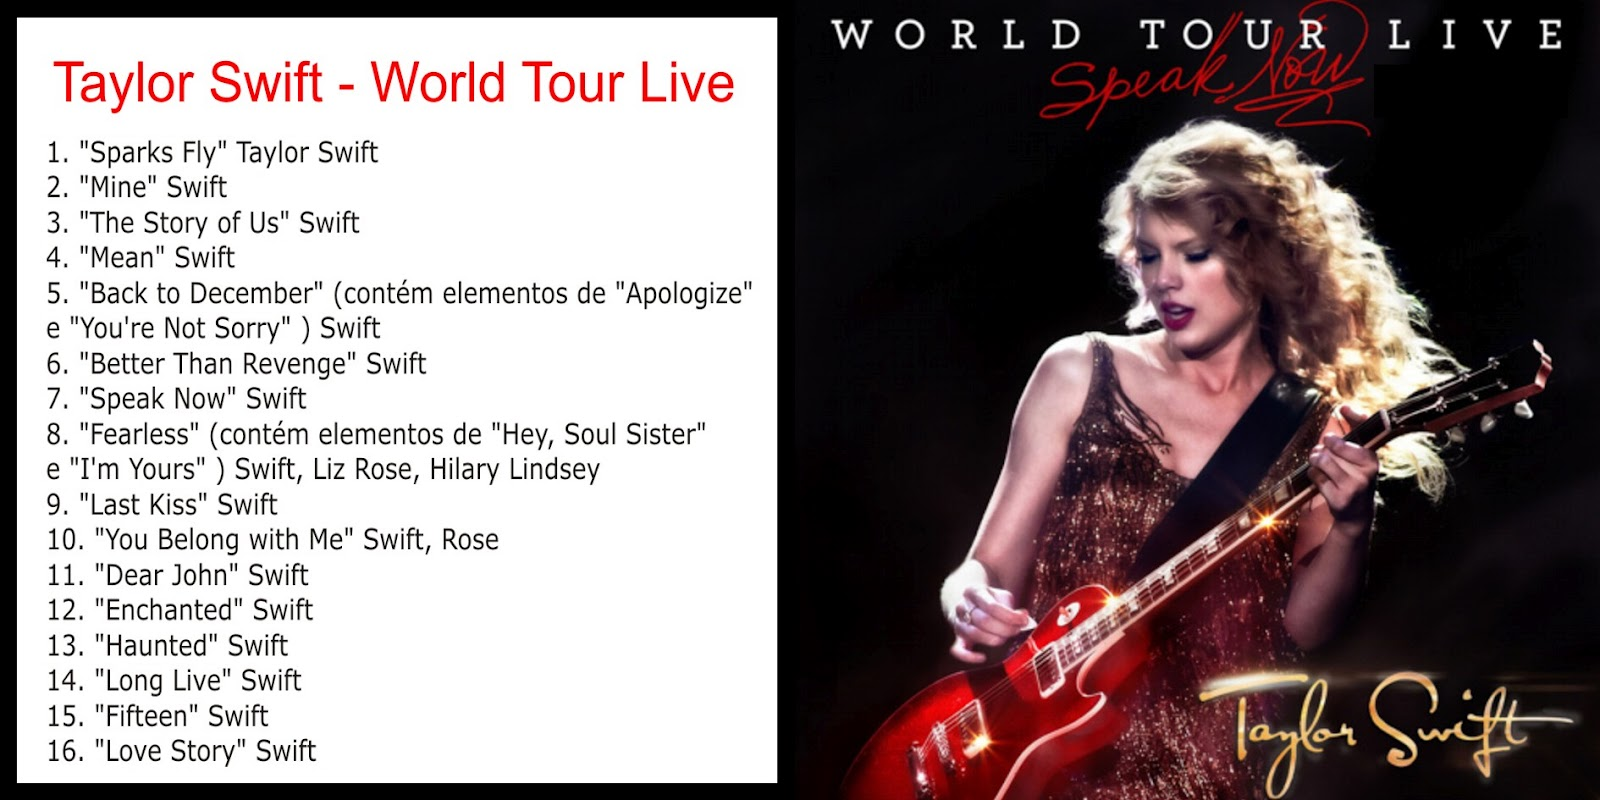 http://1.bp.blogspot.com/--lX2FR-jWS0/T15Gpu3IhqI/AAAAAAAACoI/8kVz7peGTtw/s1600/CD+TAYLOR+SWIFT+-+WORLD+TOUR+LIVE+SPEAK+NOW+(2011).jpg